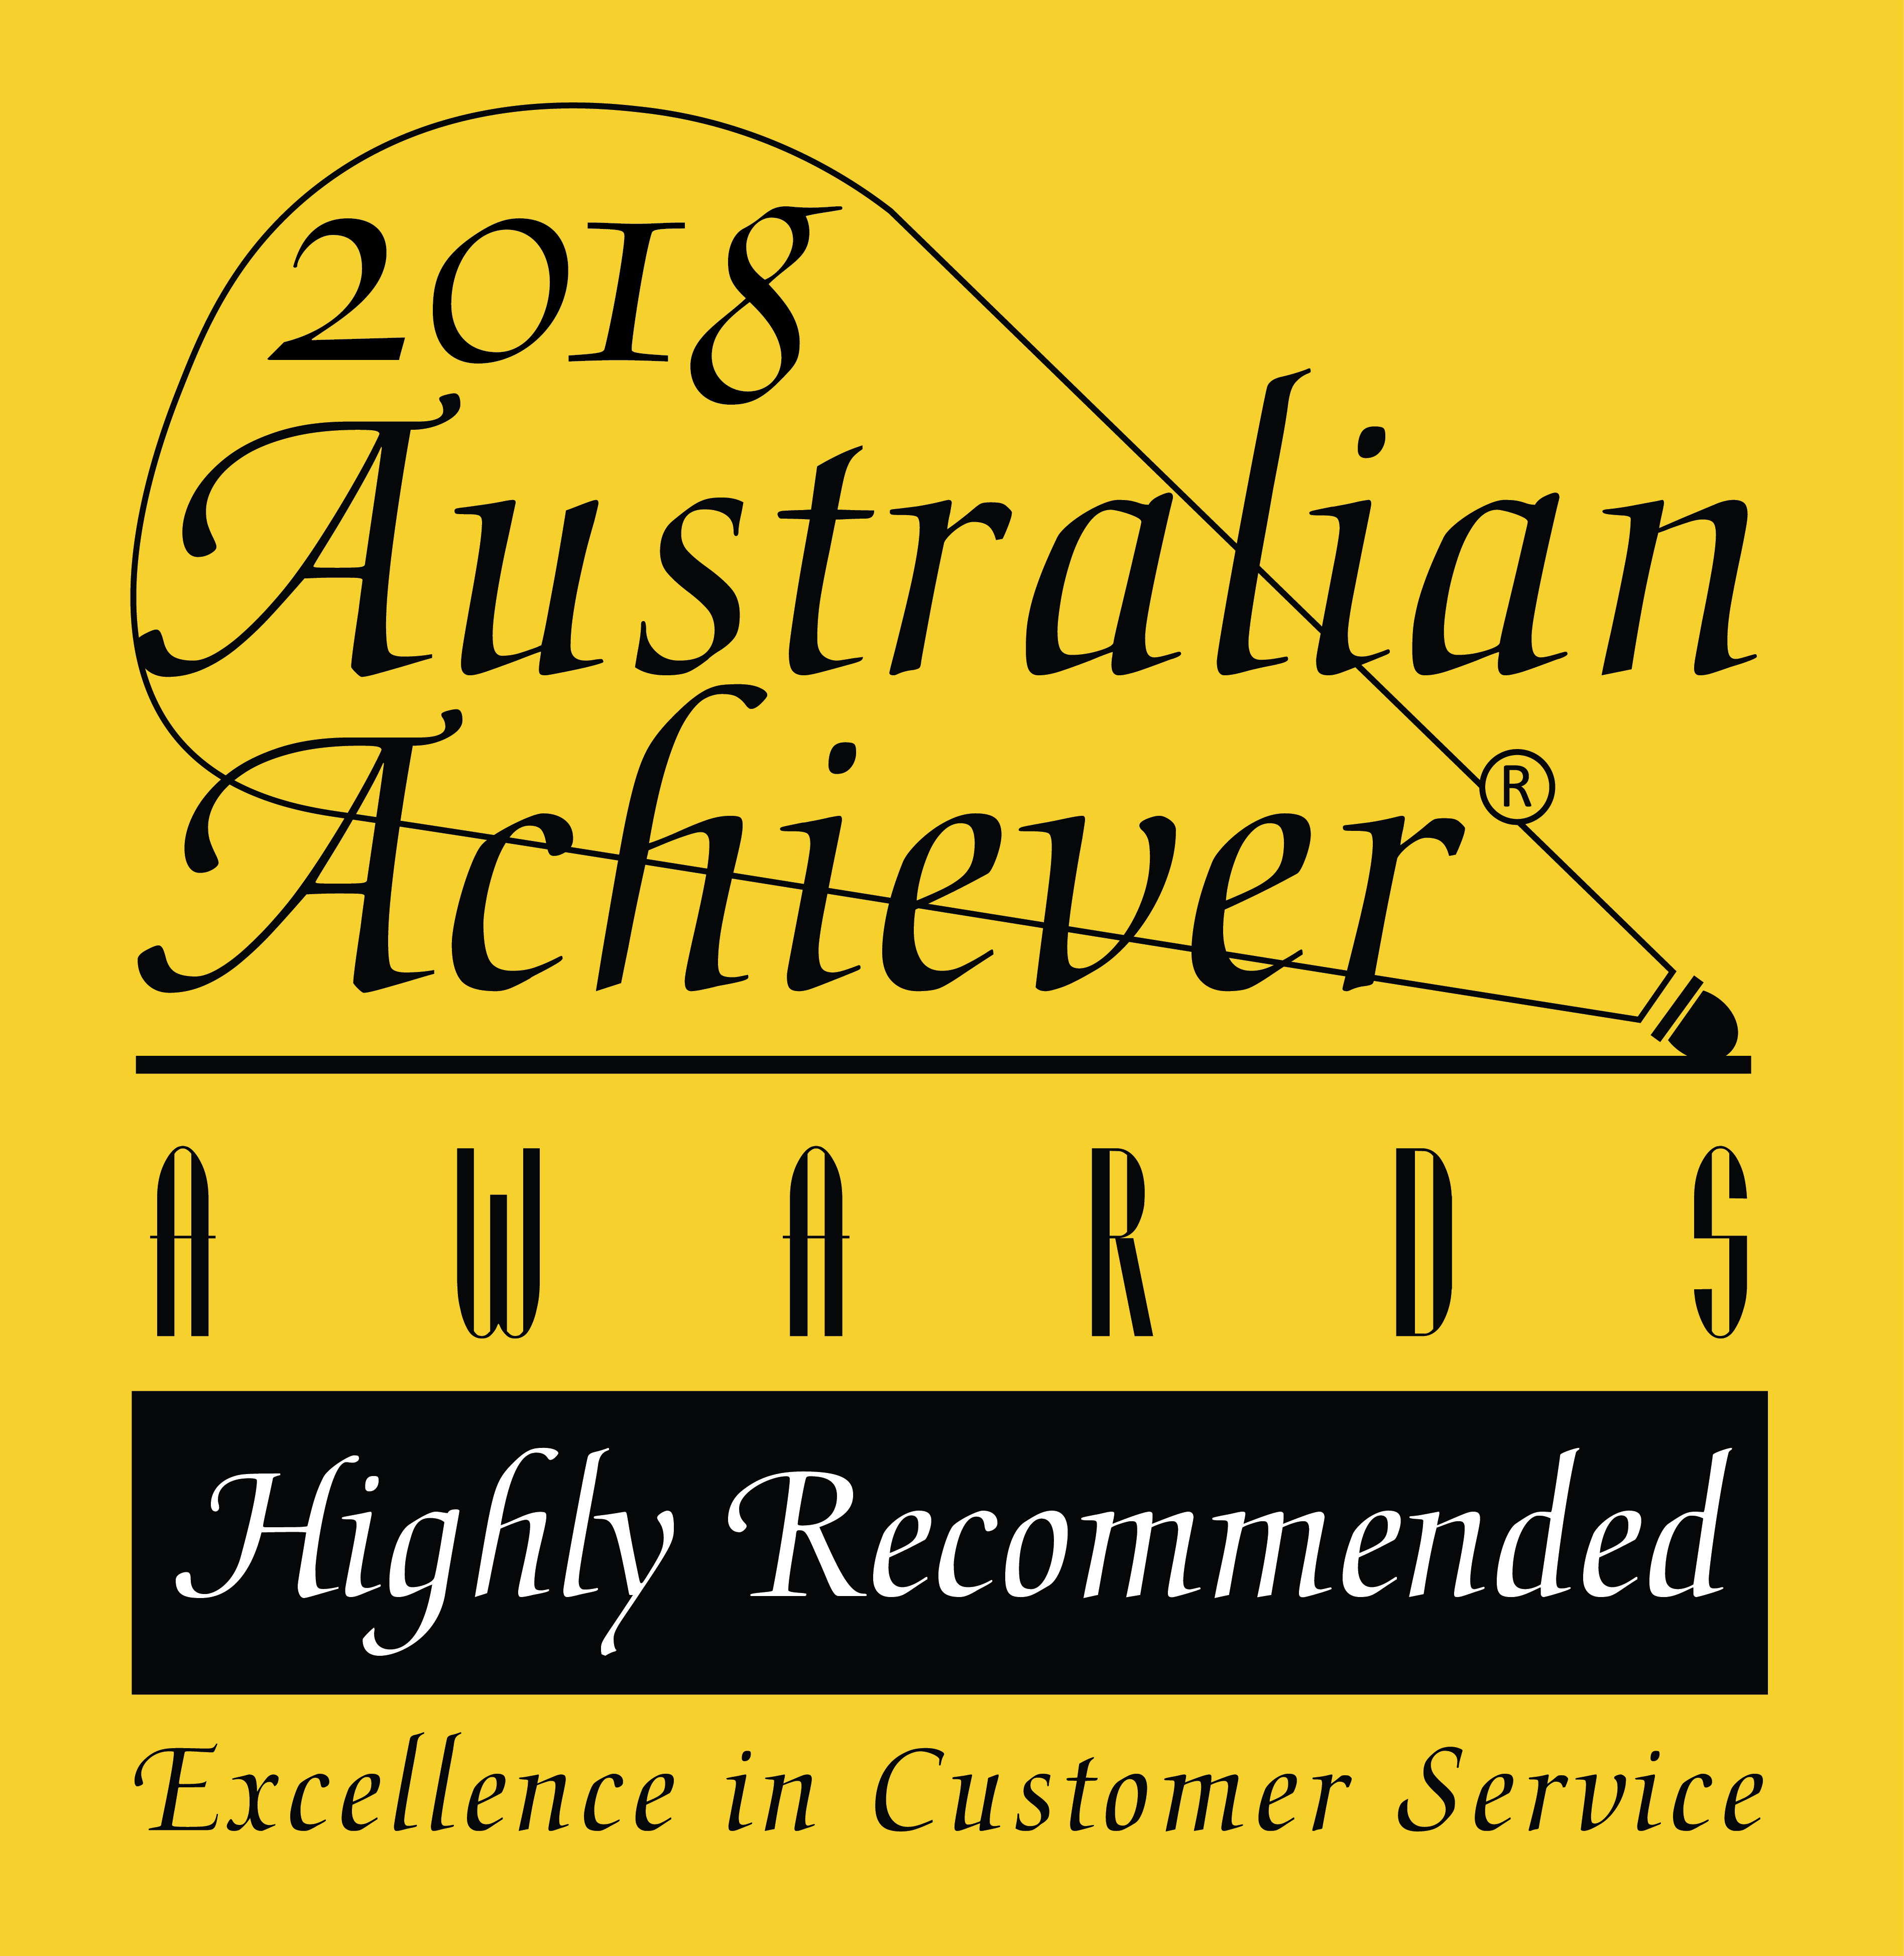 2018 Australian Achiever Awards - Highly Recommended